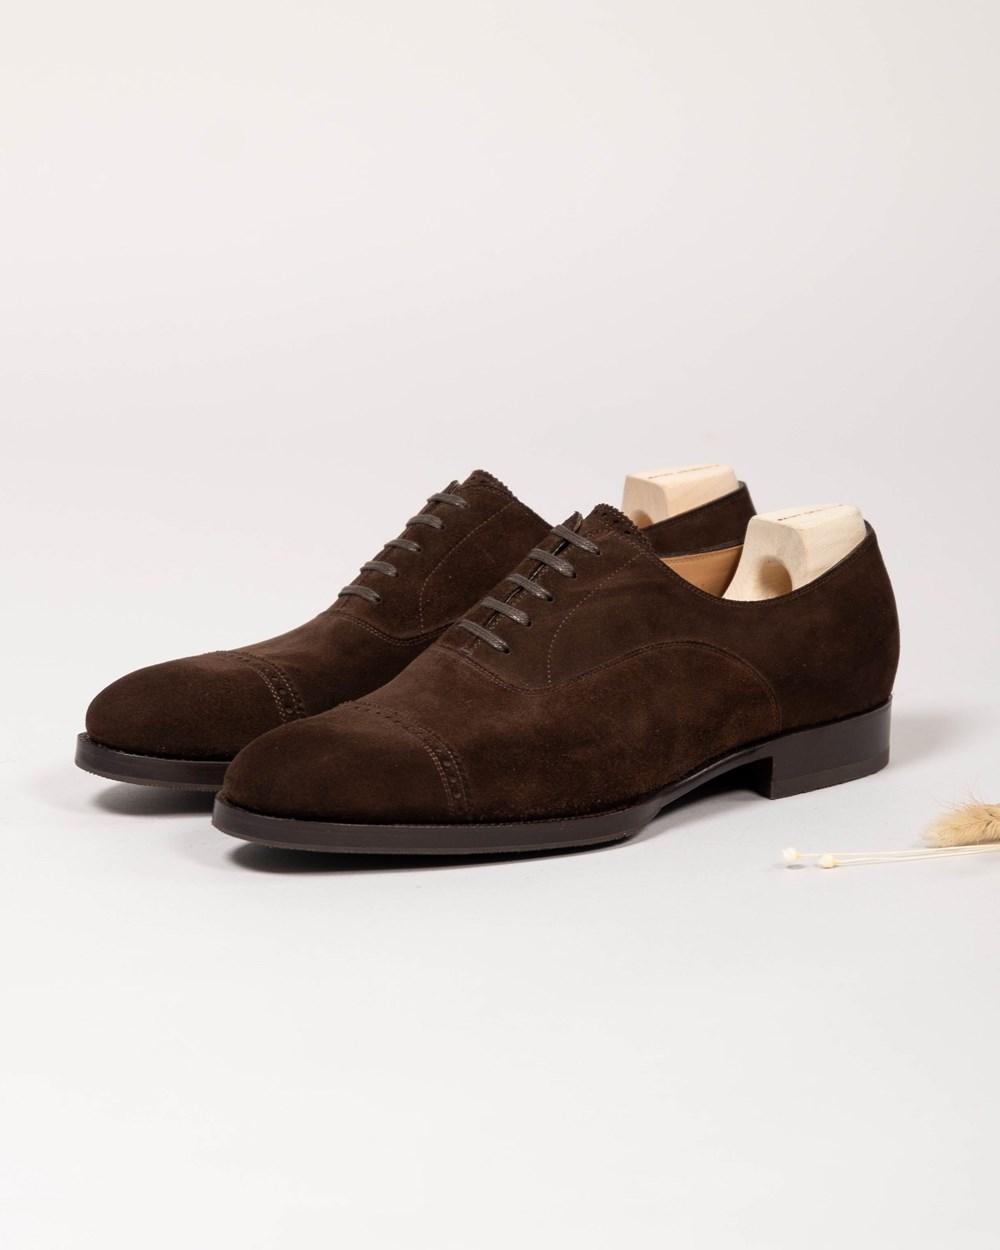 Saint Crispin's Punched Captoe Oxford 522C BCK